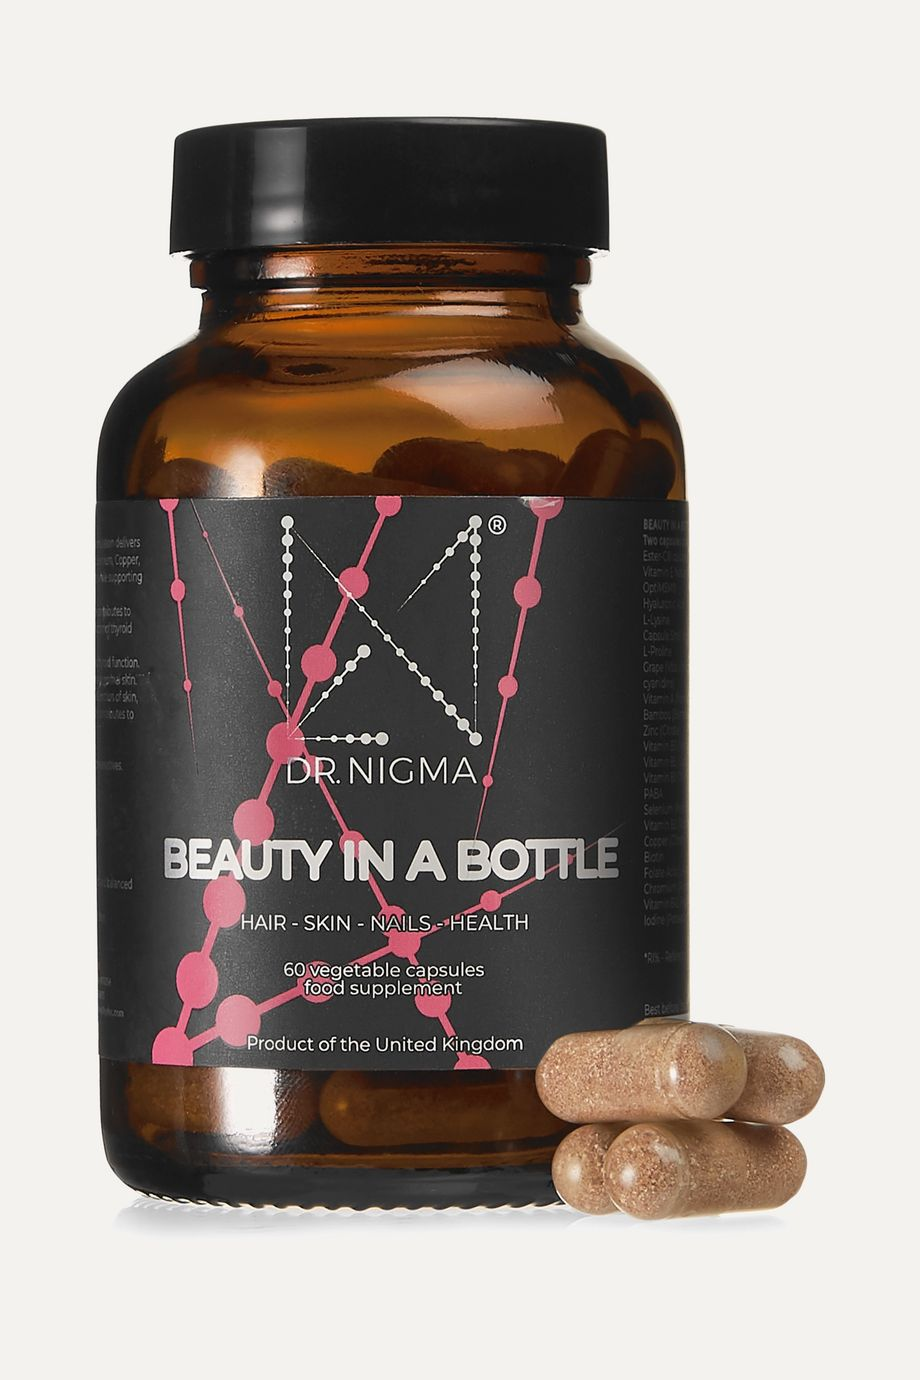 Dr Nigma Talib Beauty in a Bottle (60 capsules)